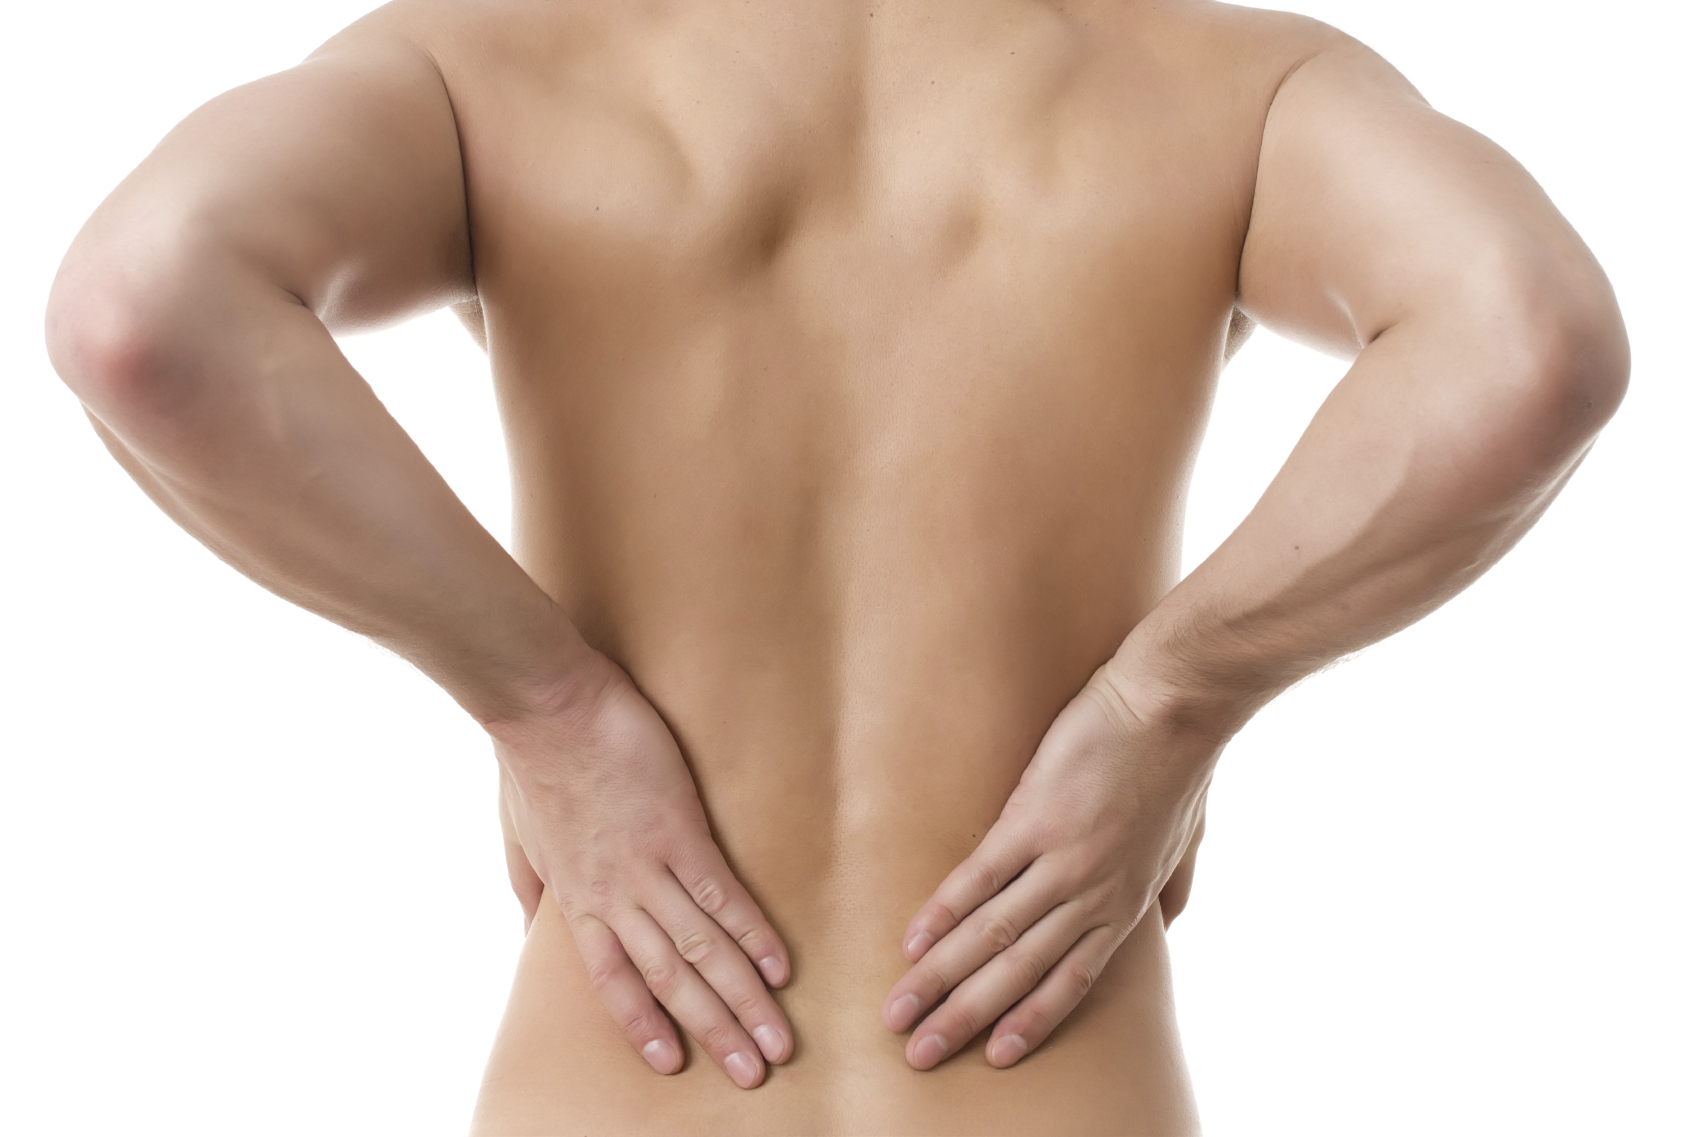 Osteopathy helps relieve back pain